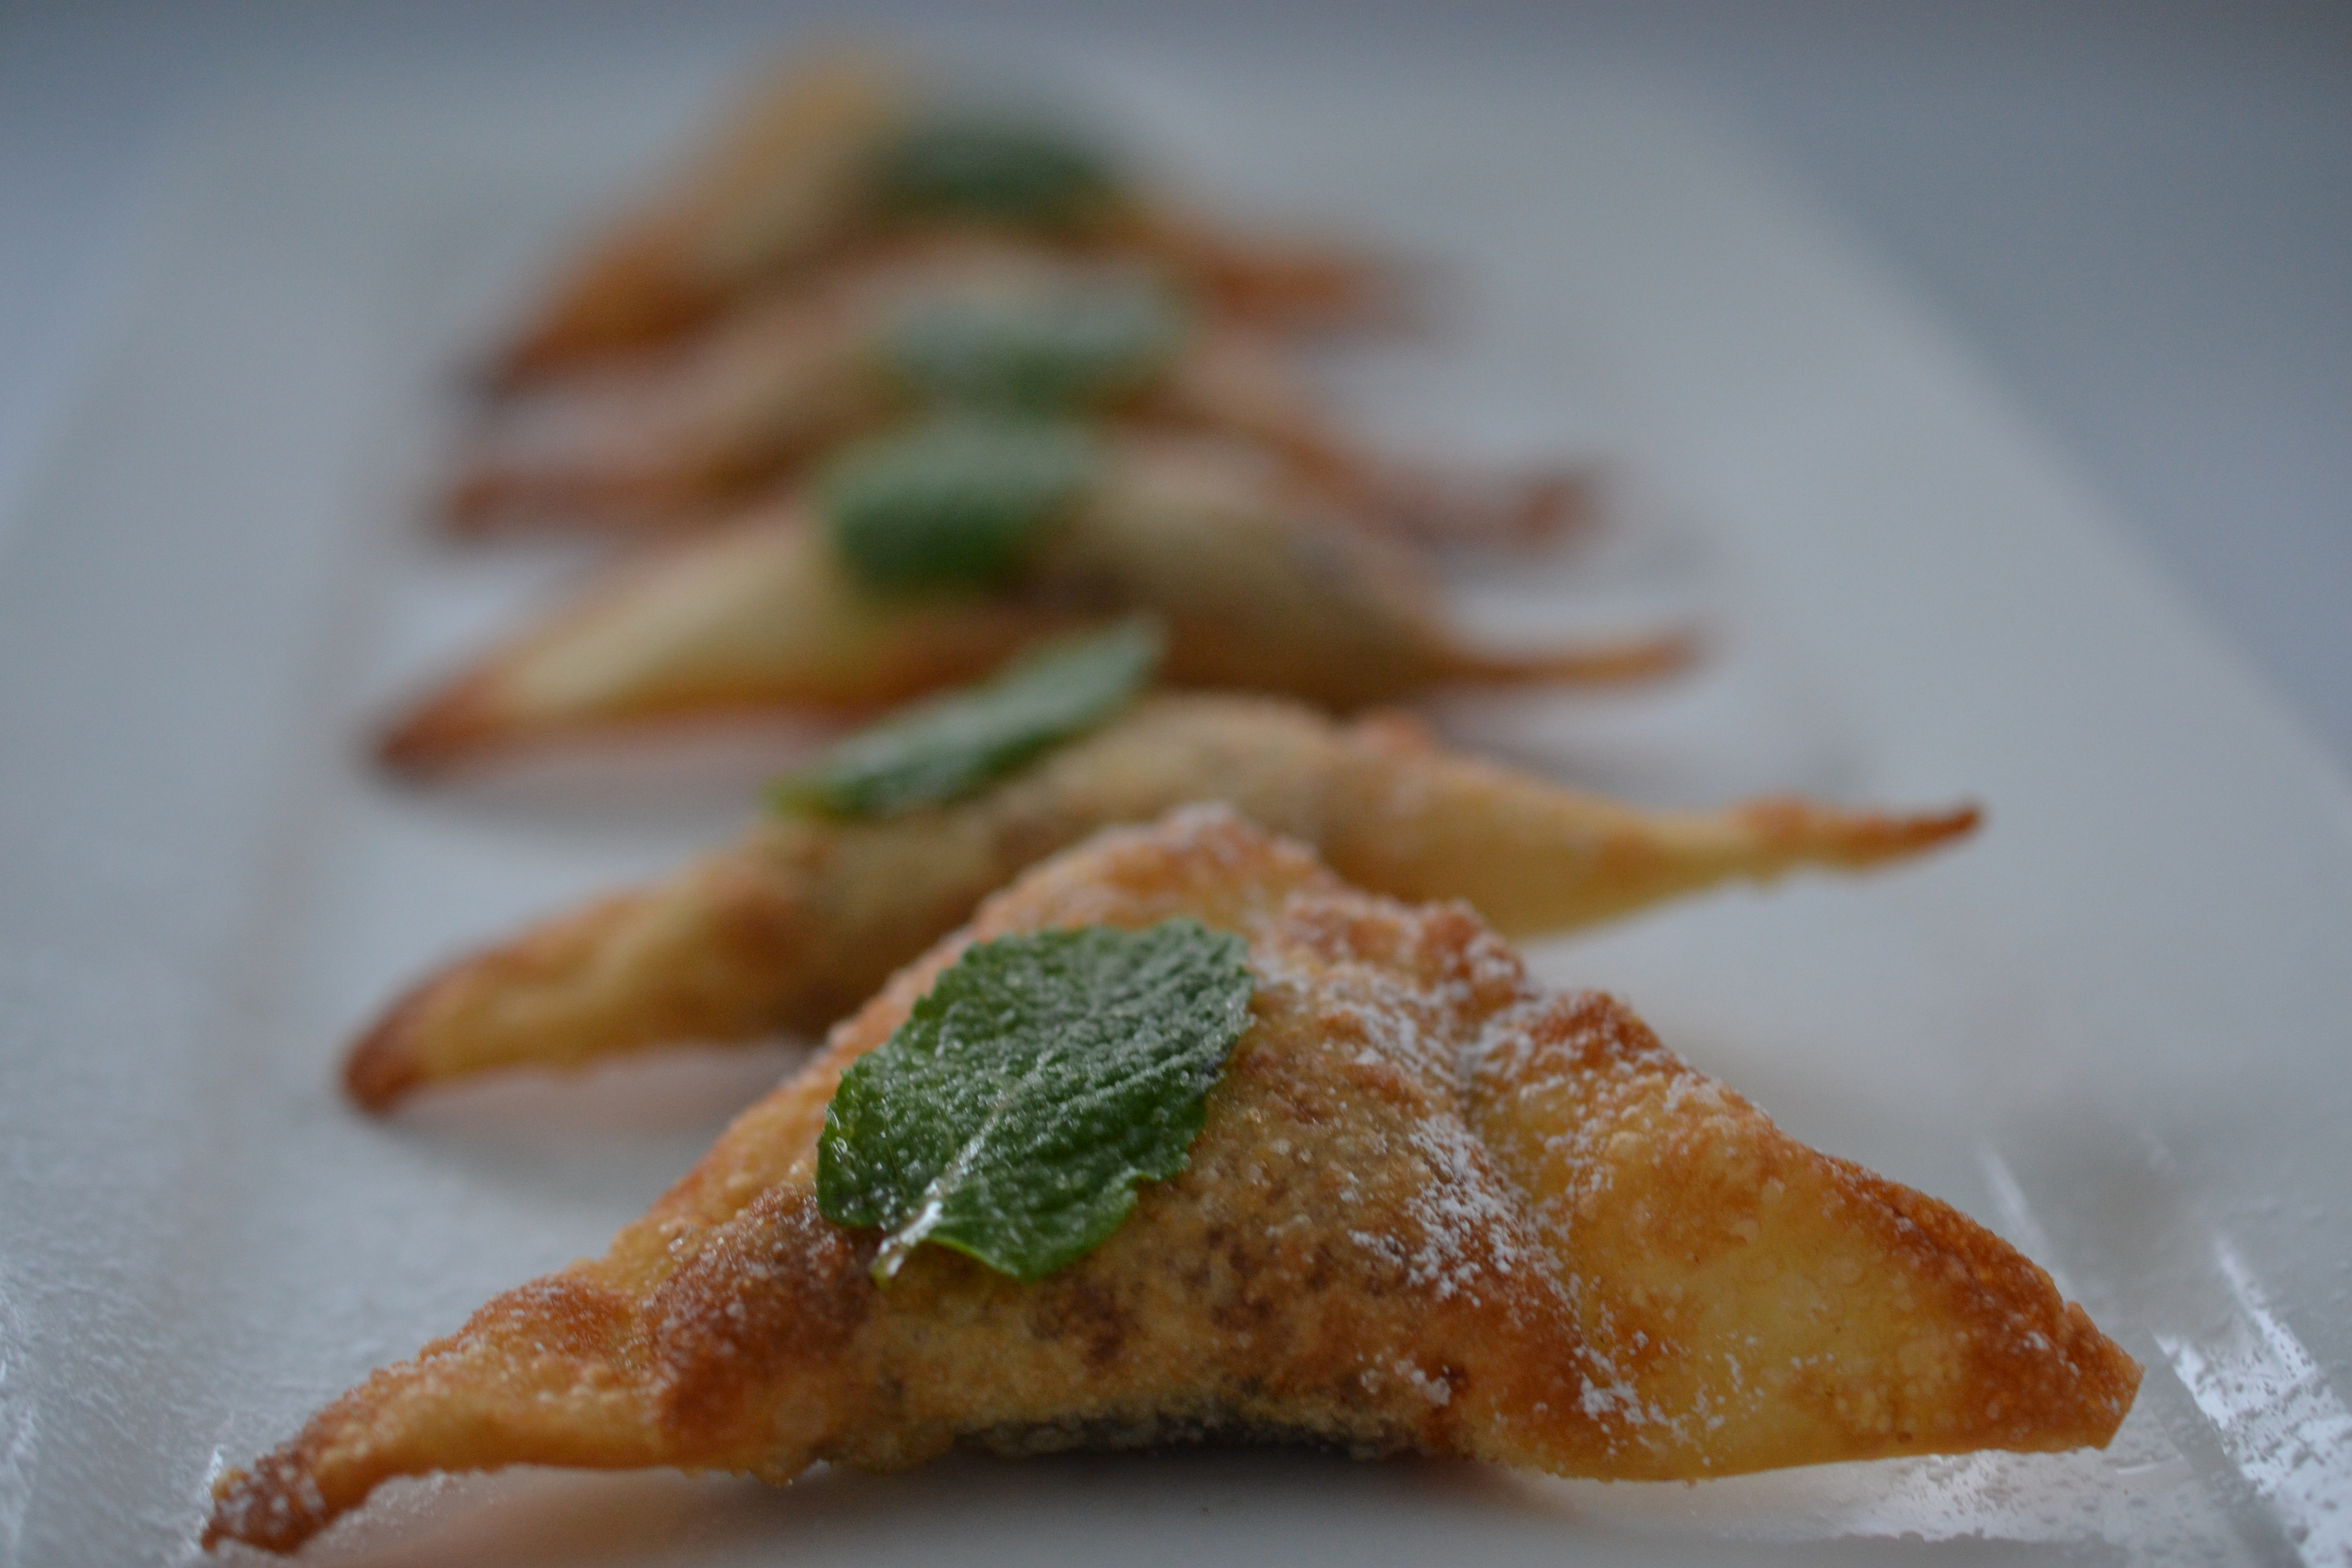 Chocolate Wontons Shredded Sprout